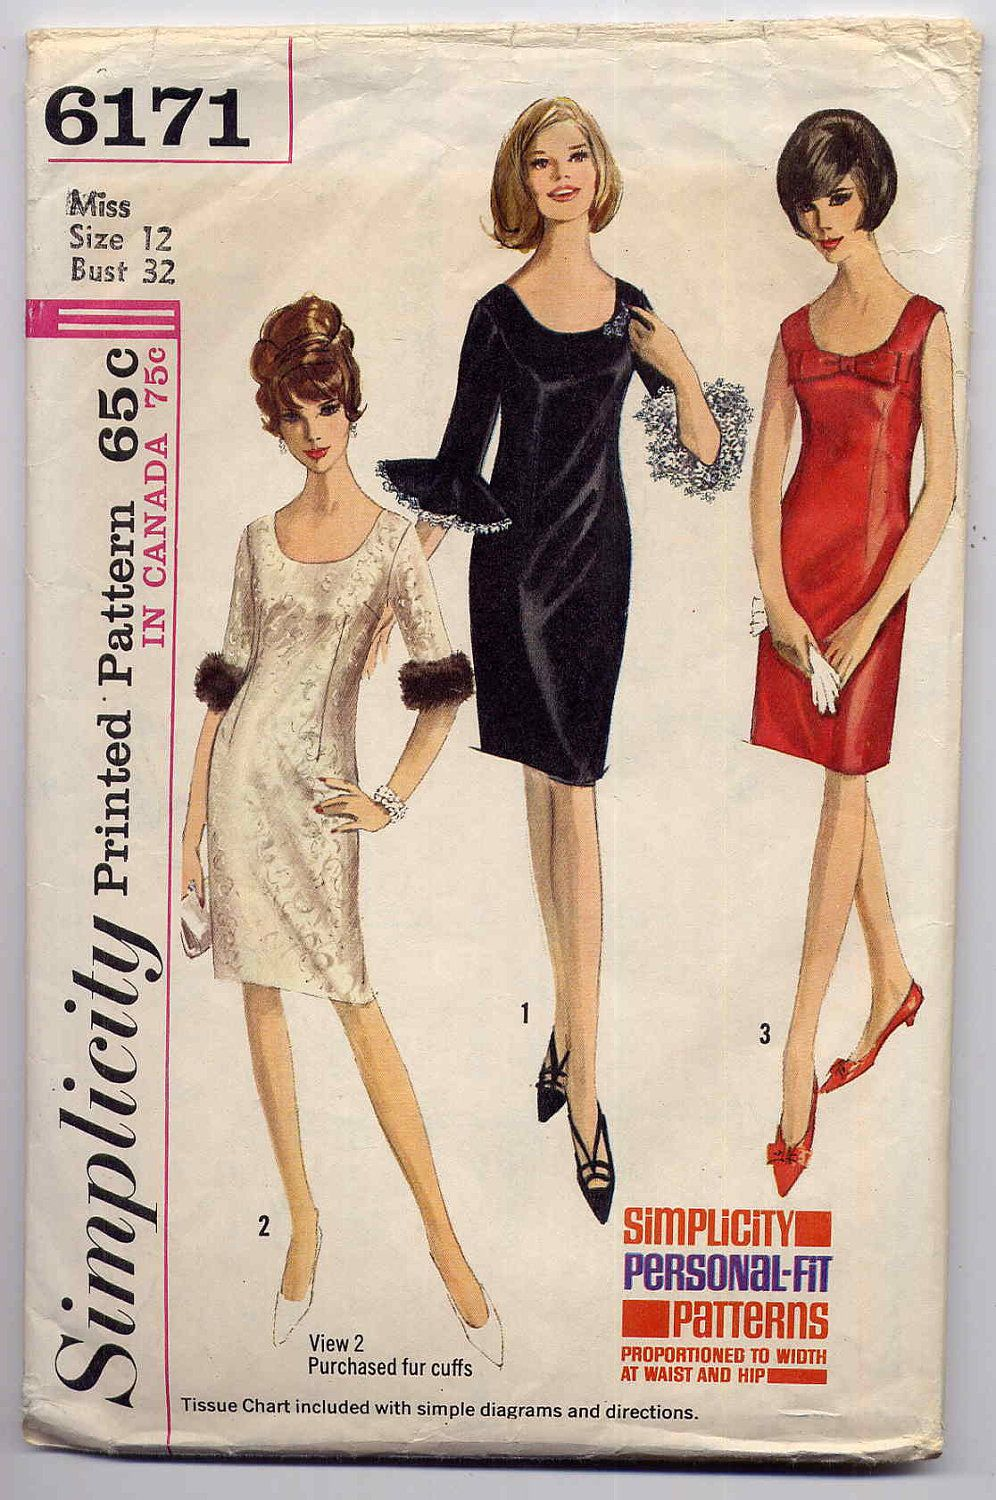 Vintage 60s Mod Slim Cocktail Dress Sewing Pattern Sleeveless or ...